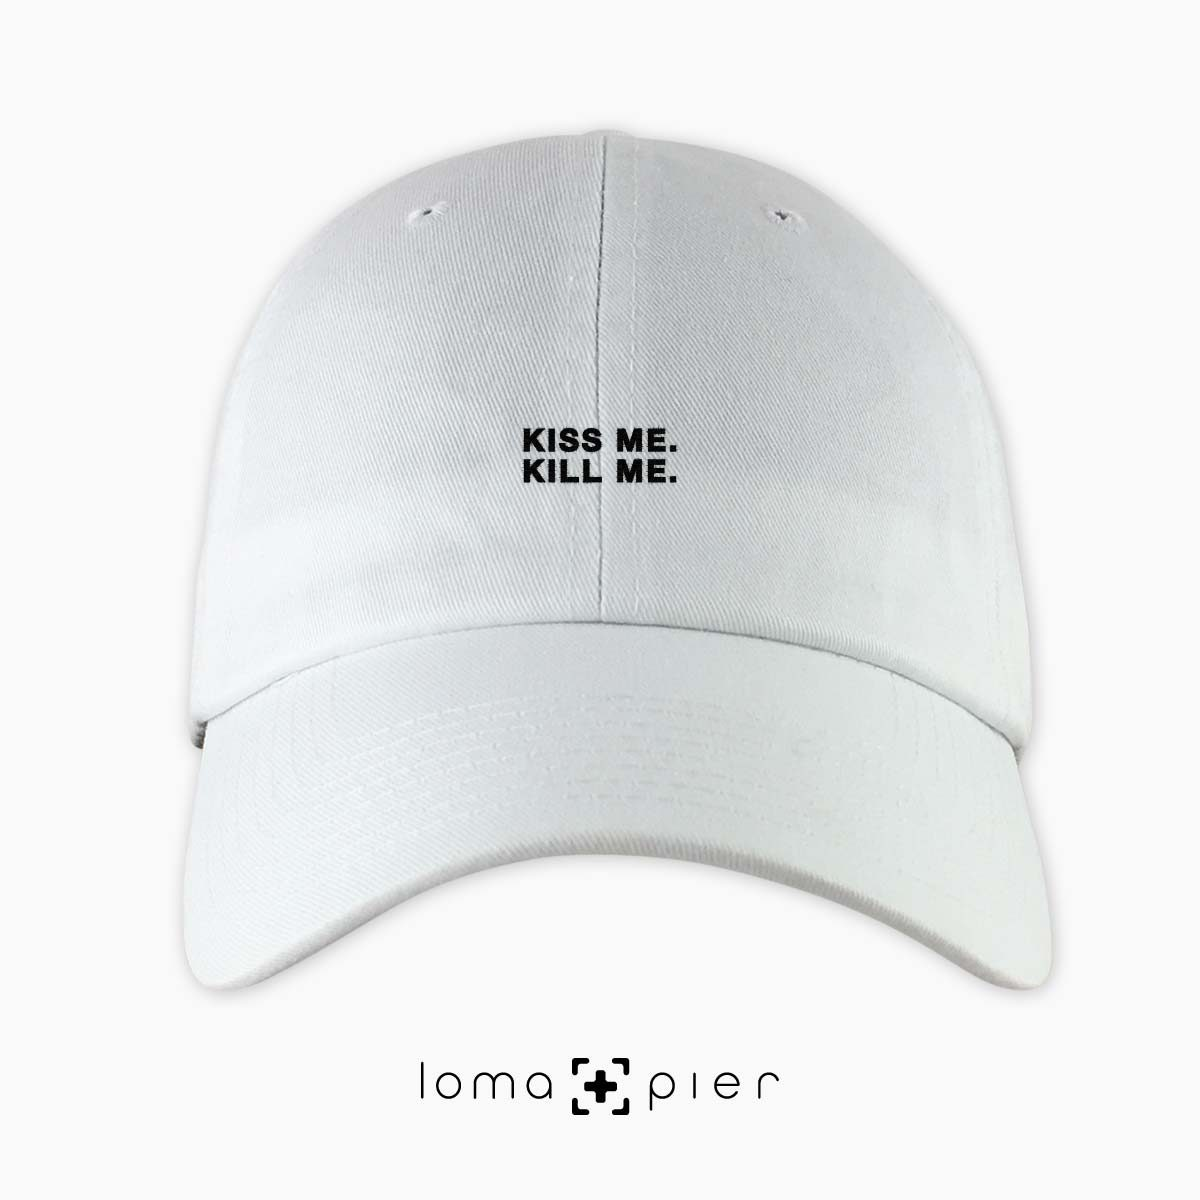 KISS ME. KILL ME. typography embroidered on a white unstructured dad hat with black thread by loma+pier hat store made in the USA